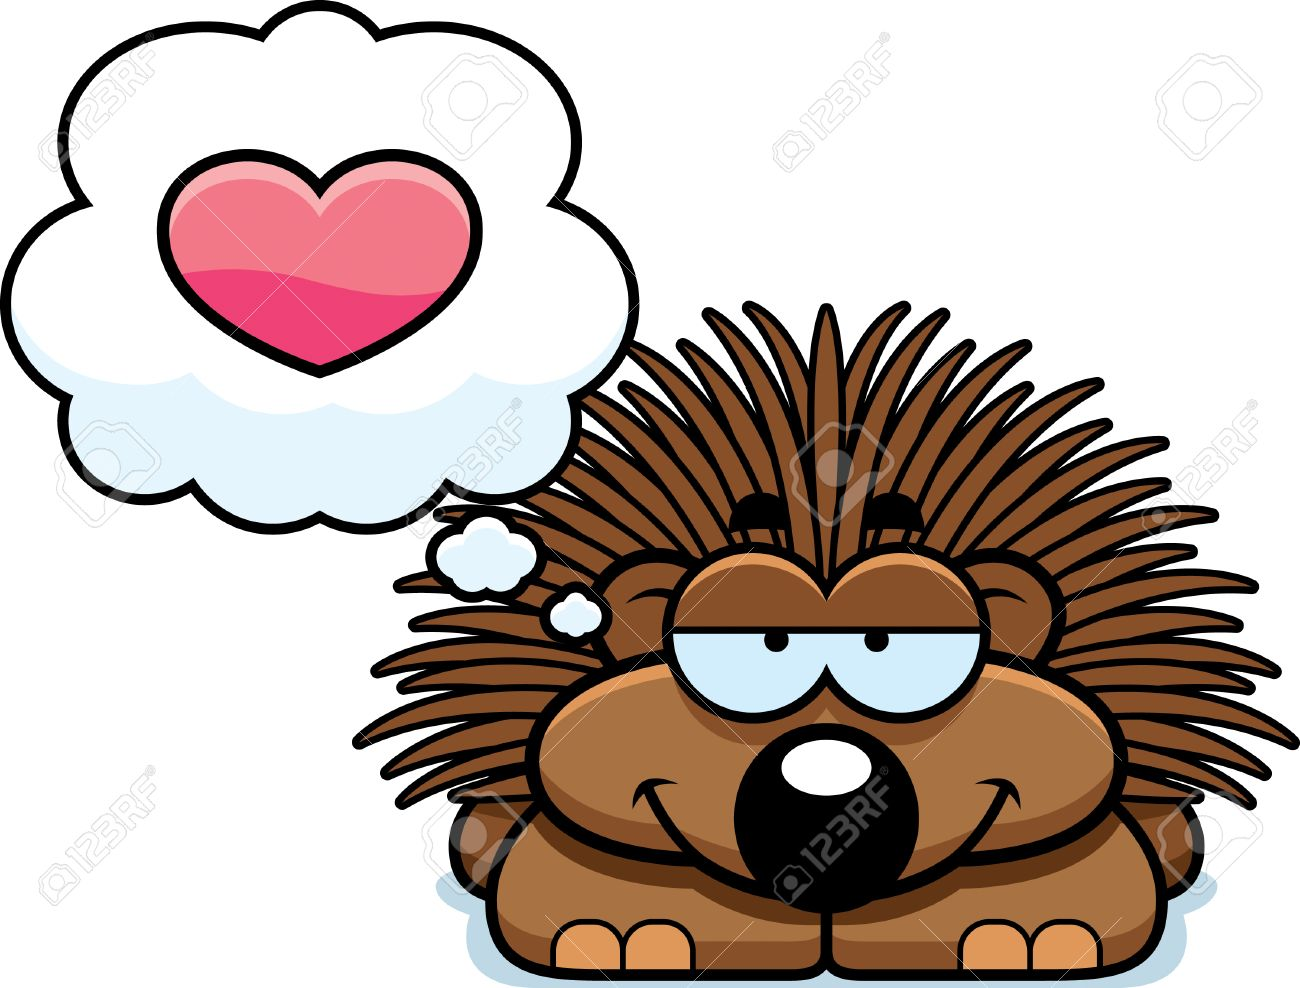 a cartoon illustration of a little porcupine with an in love rh 123rf com porcupine clipart black and white porcupine clip art free